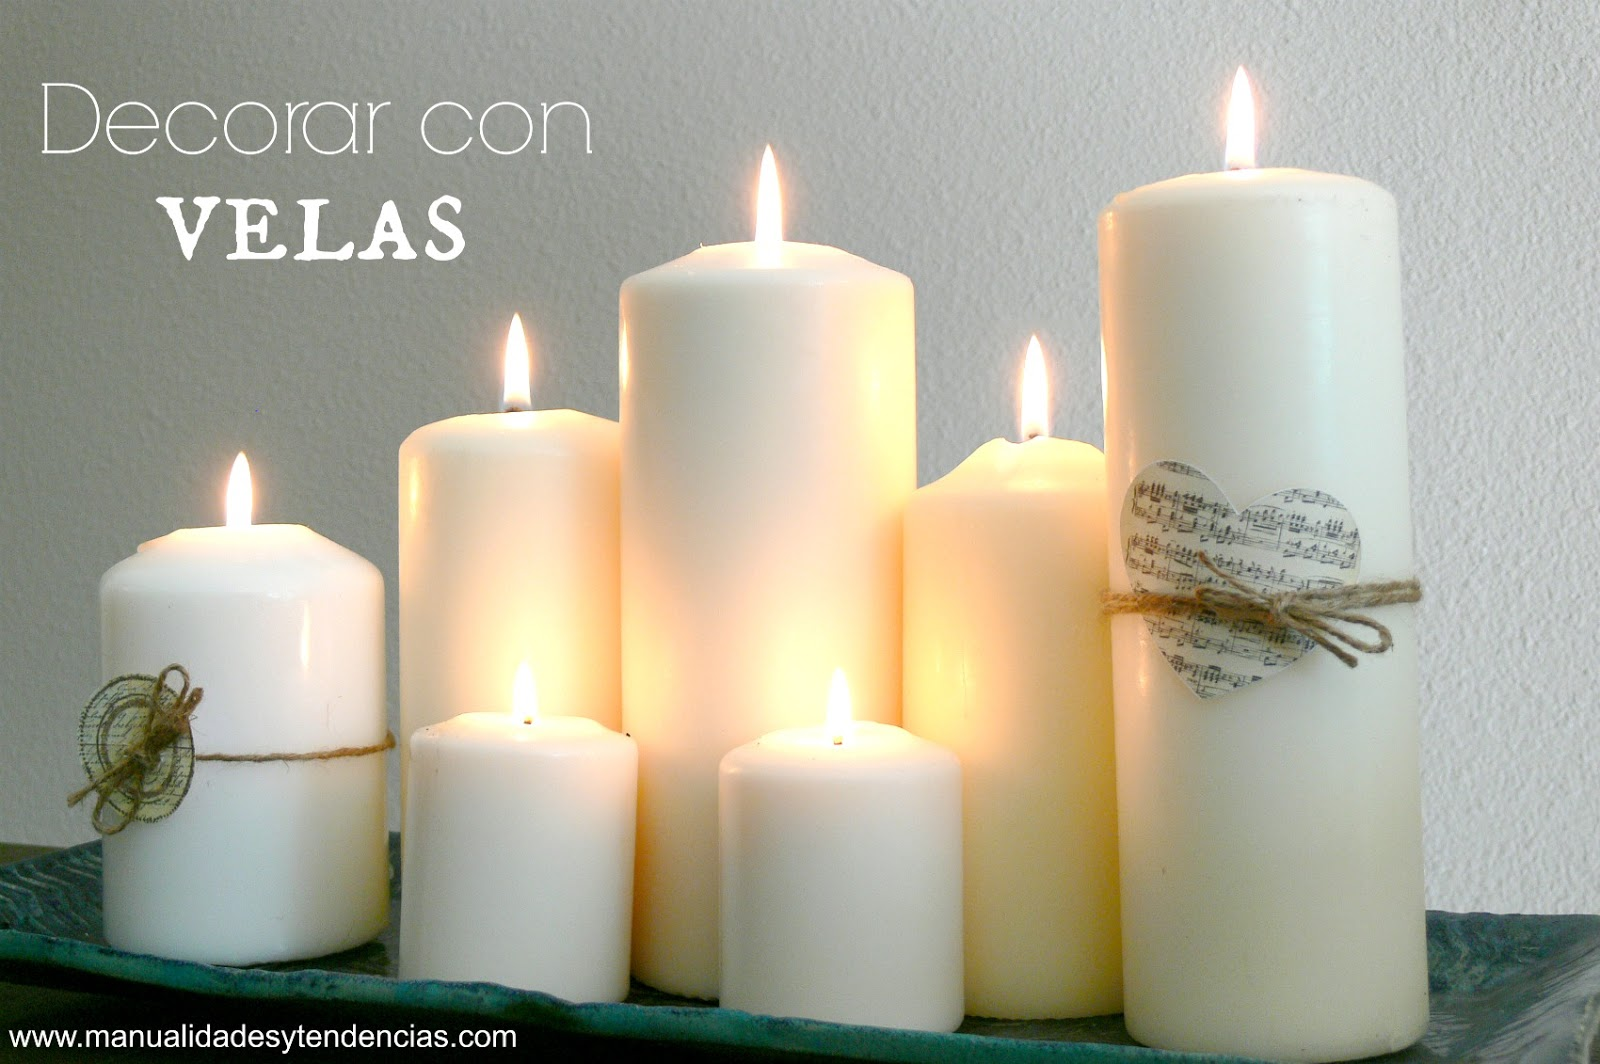 Manualidades y tendencias decorar con velas candle - Decoracion de velas ...